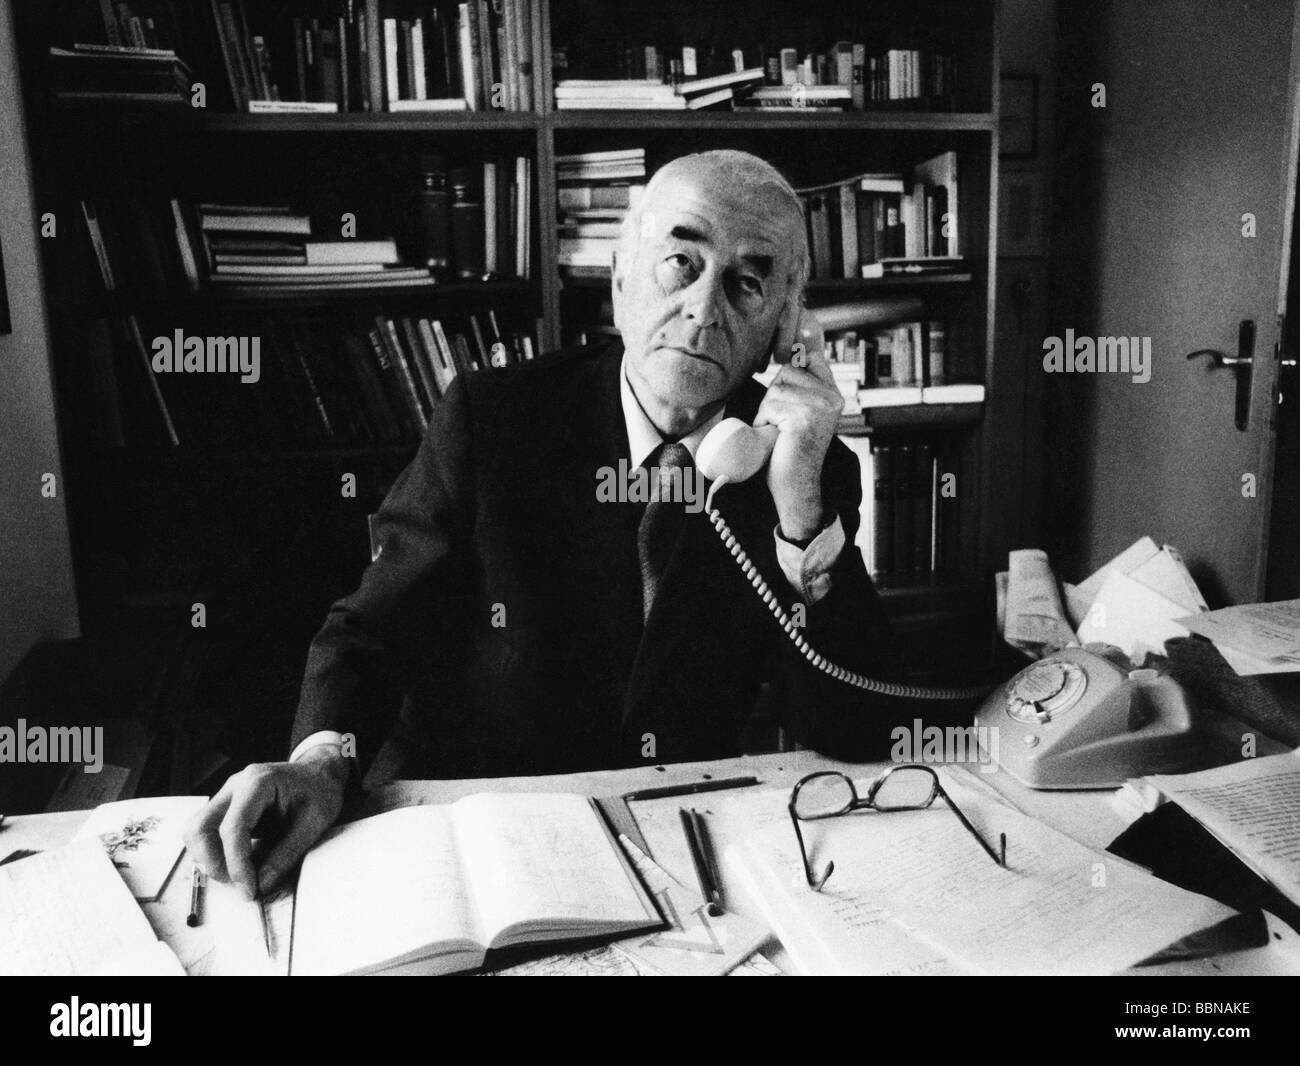 Speer, Albert, 19.3.1905 - 1.9.1981, German architect, politician (NSDAP), Minister of Armaments and War Production - Stock Image